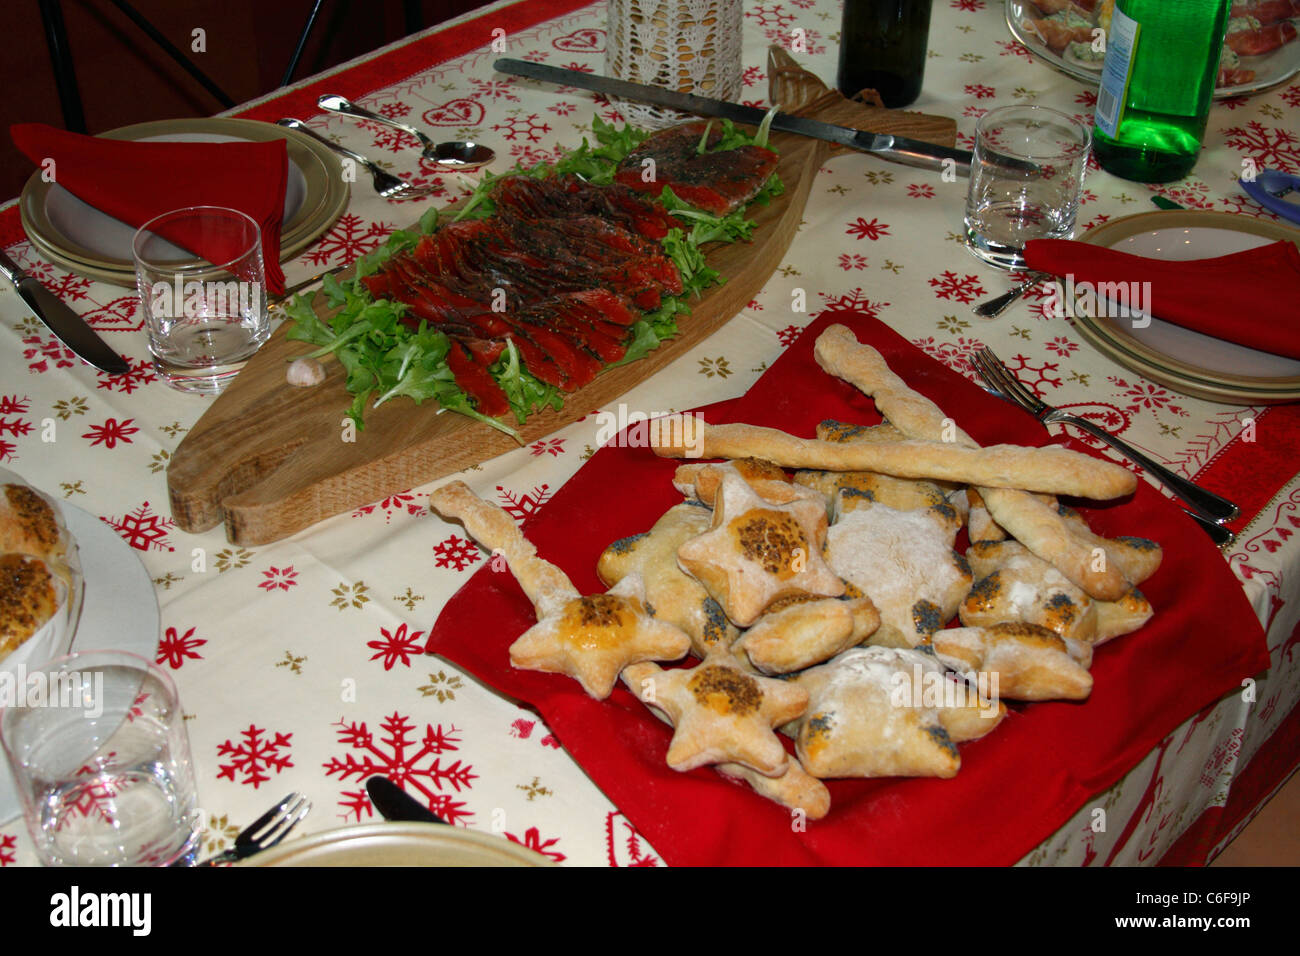 Table ready for Christmas lunch - Stock Image